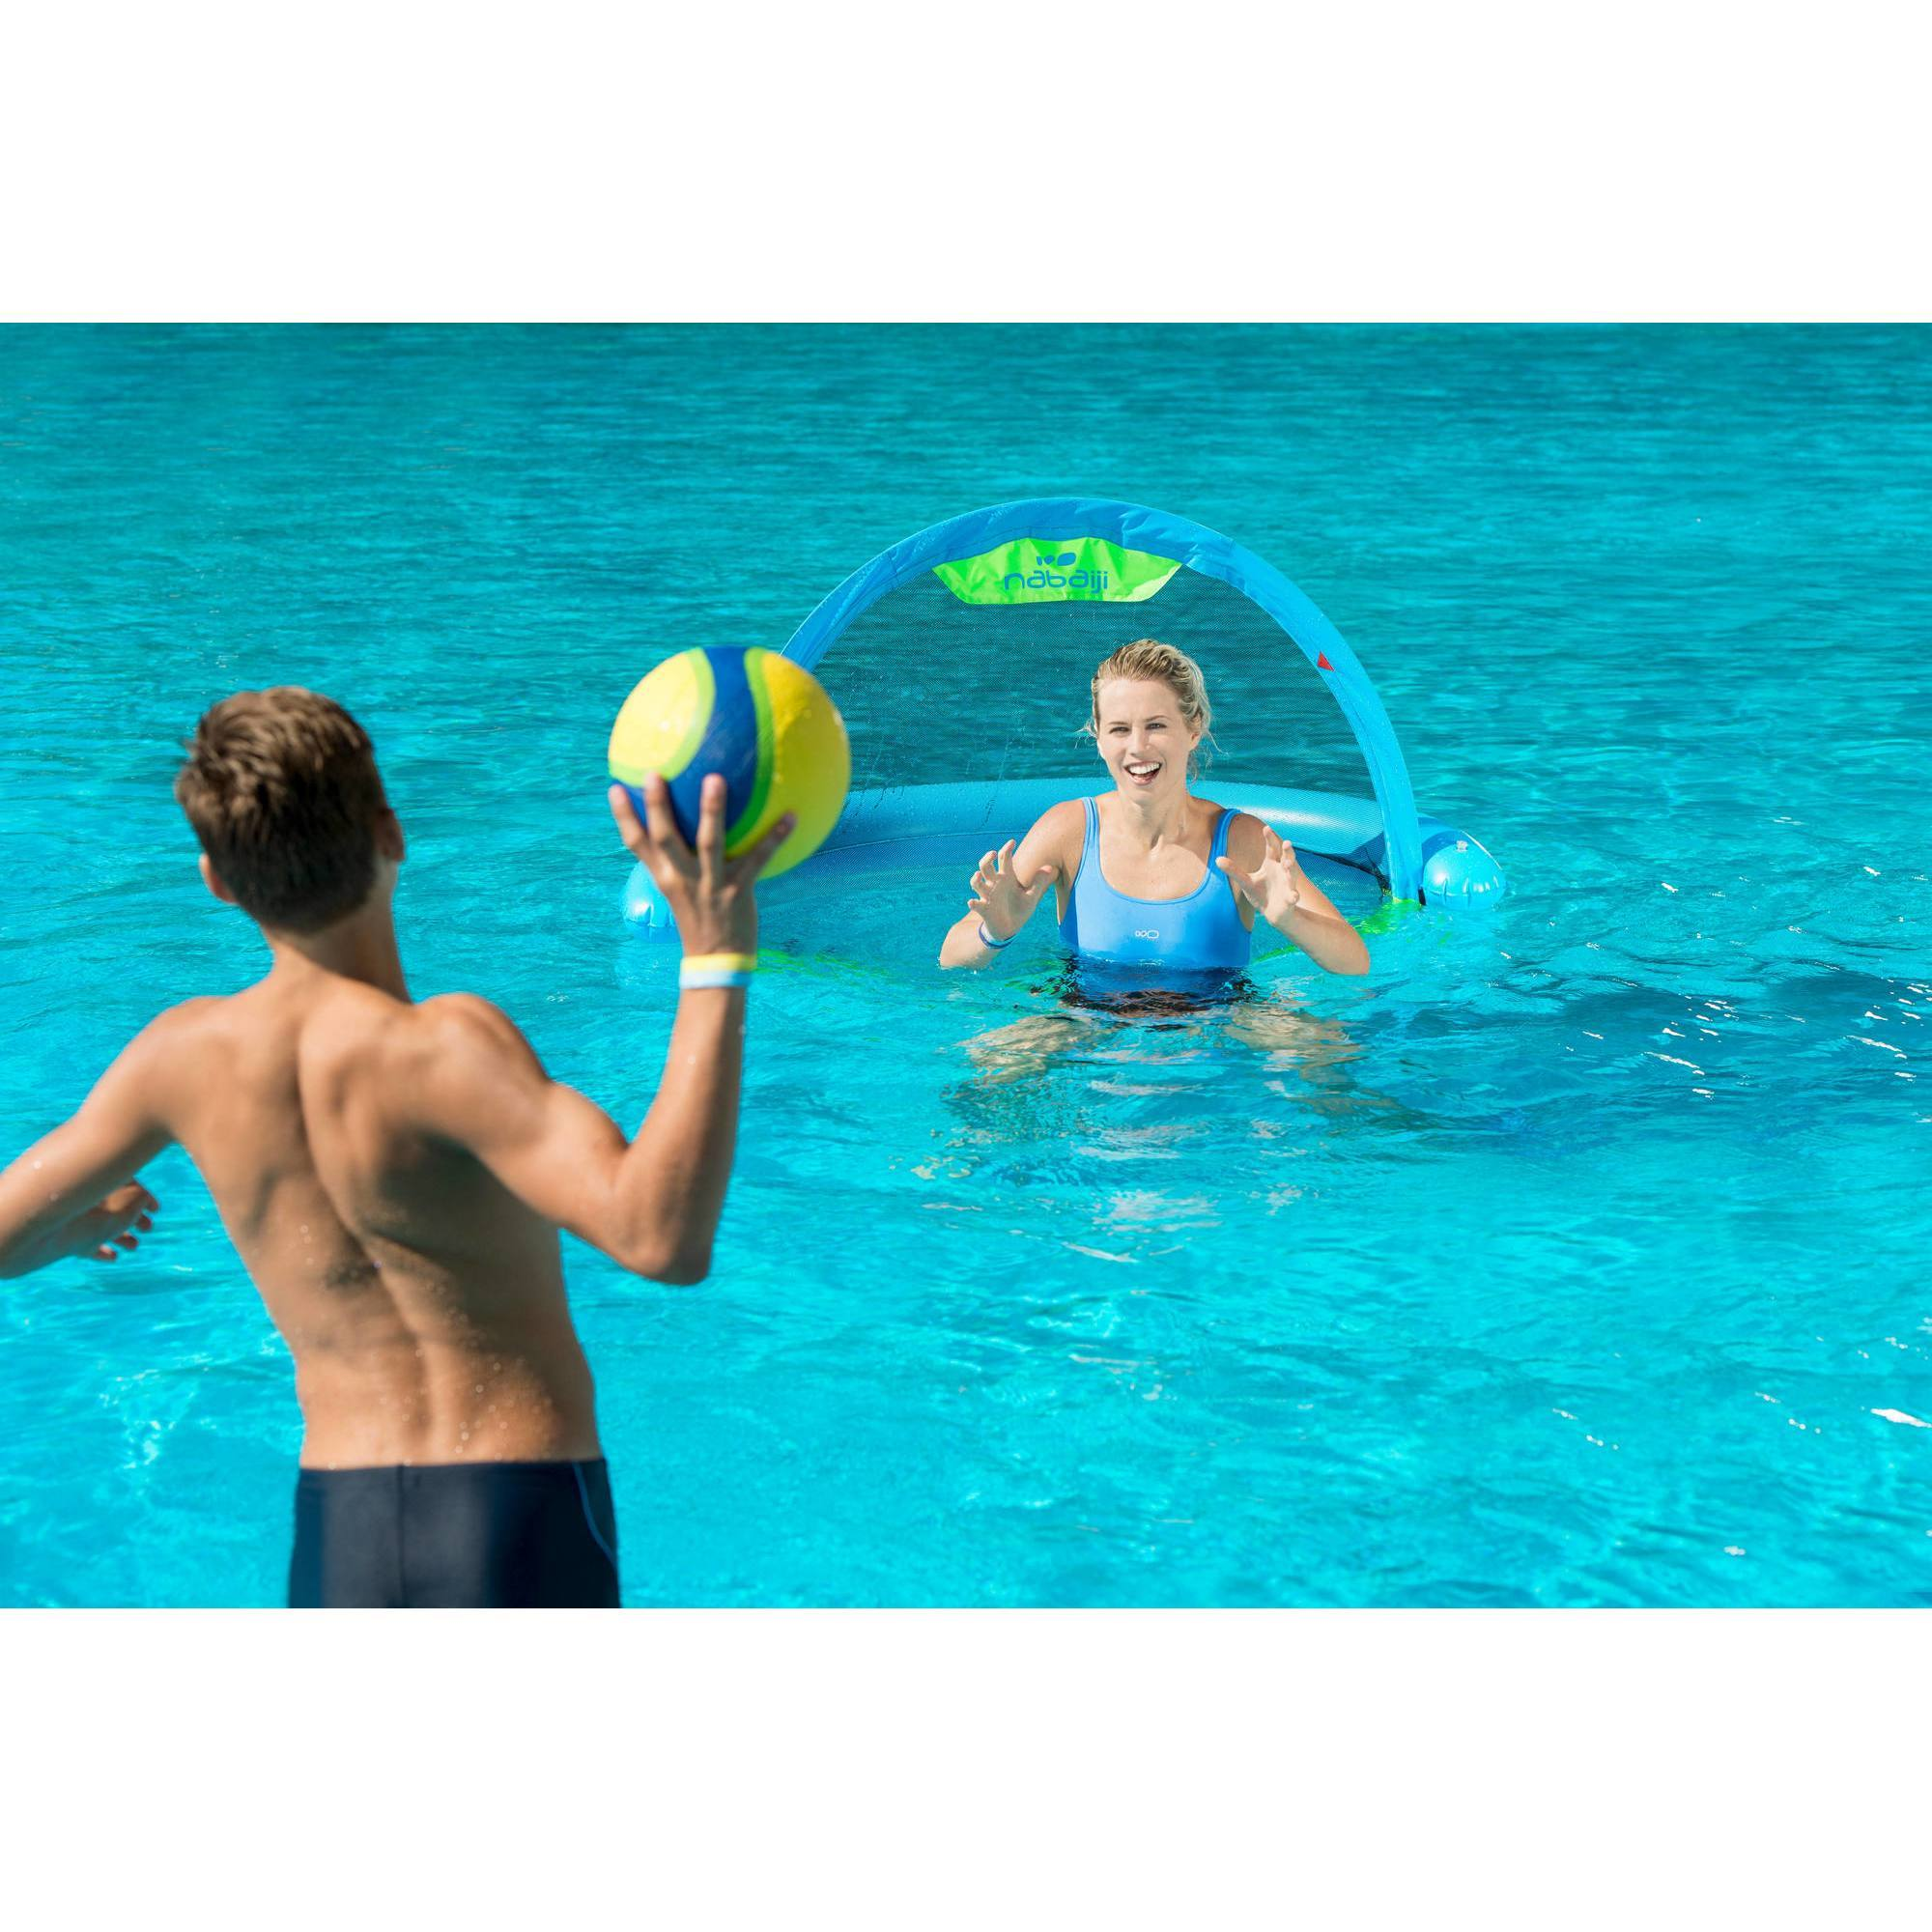 But gonflable waterpolo piscine polo up blue vert clubs for Blue water parts piscine